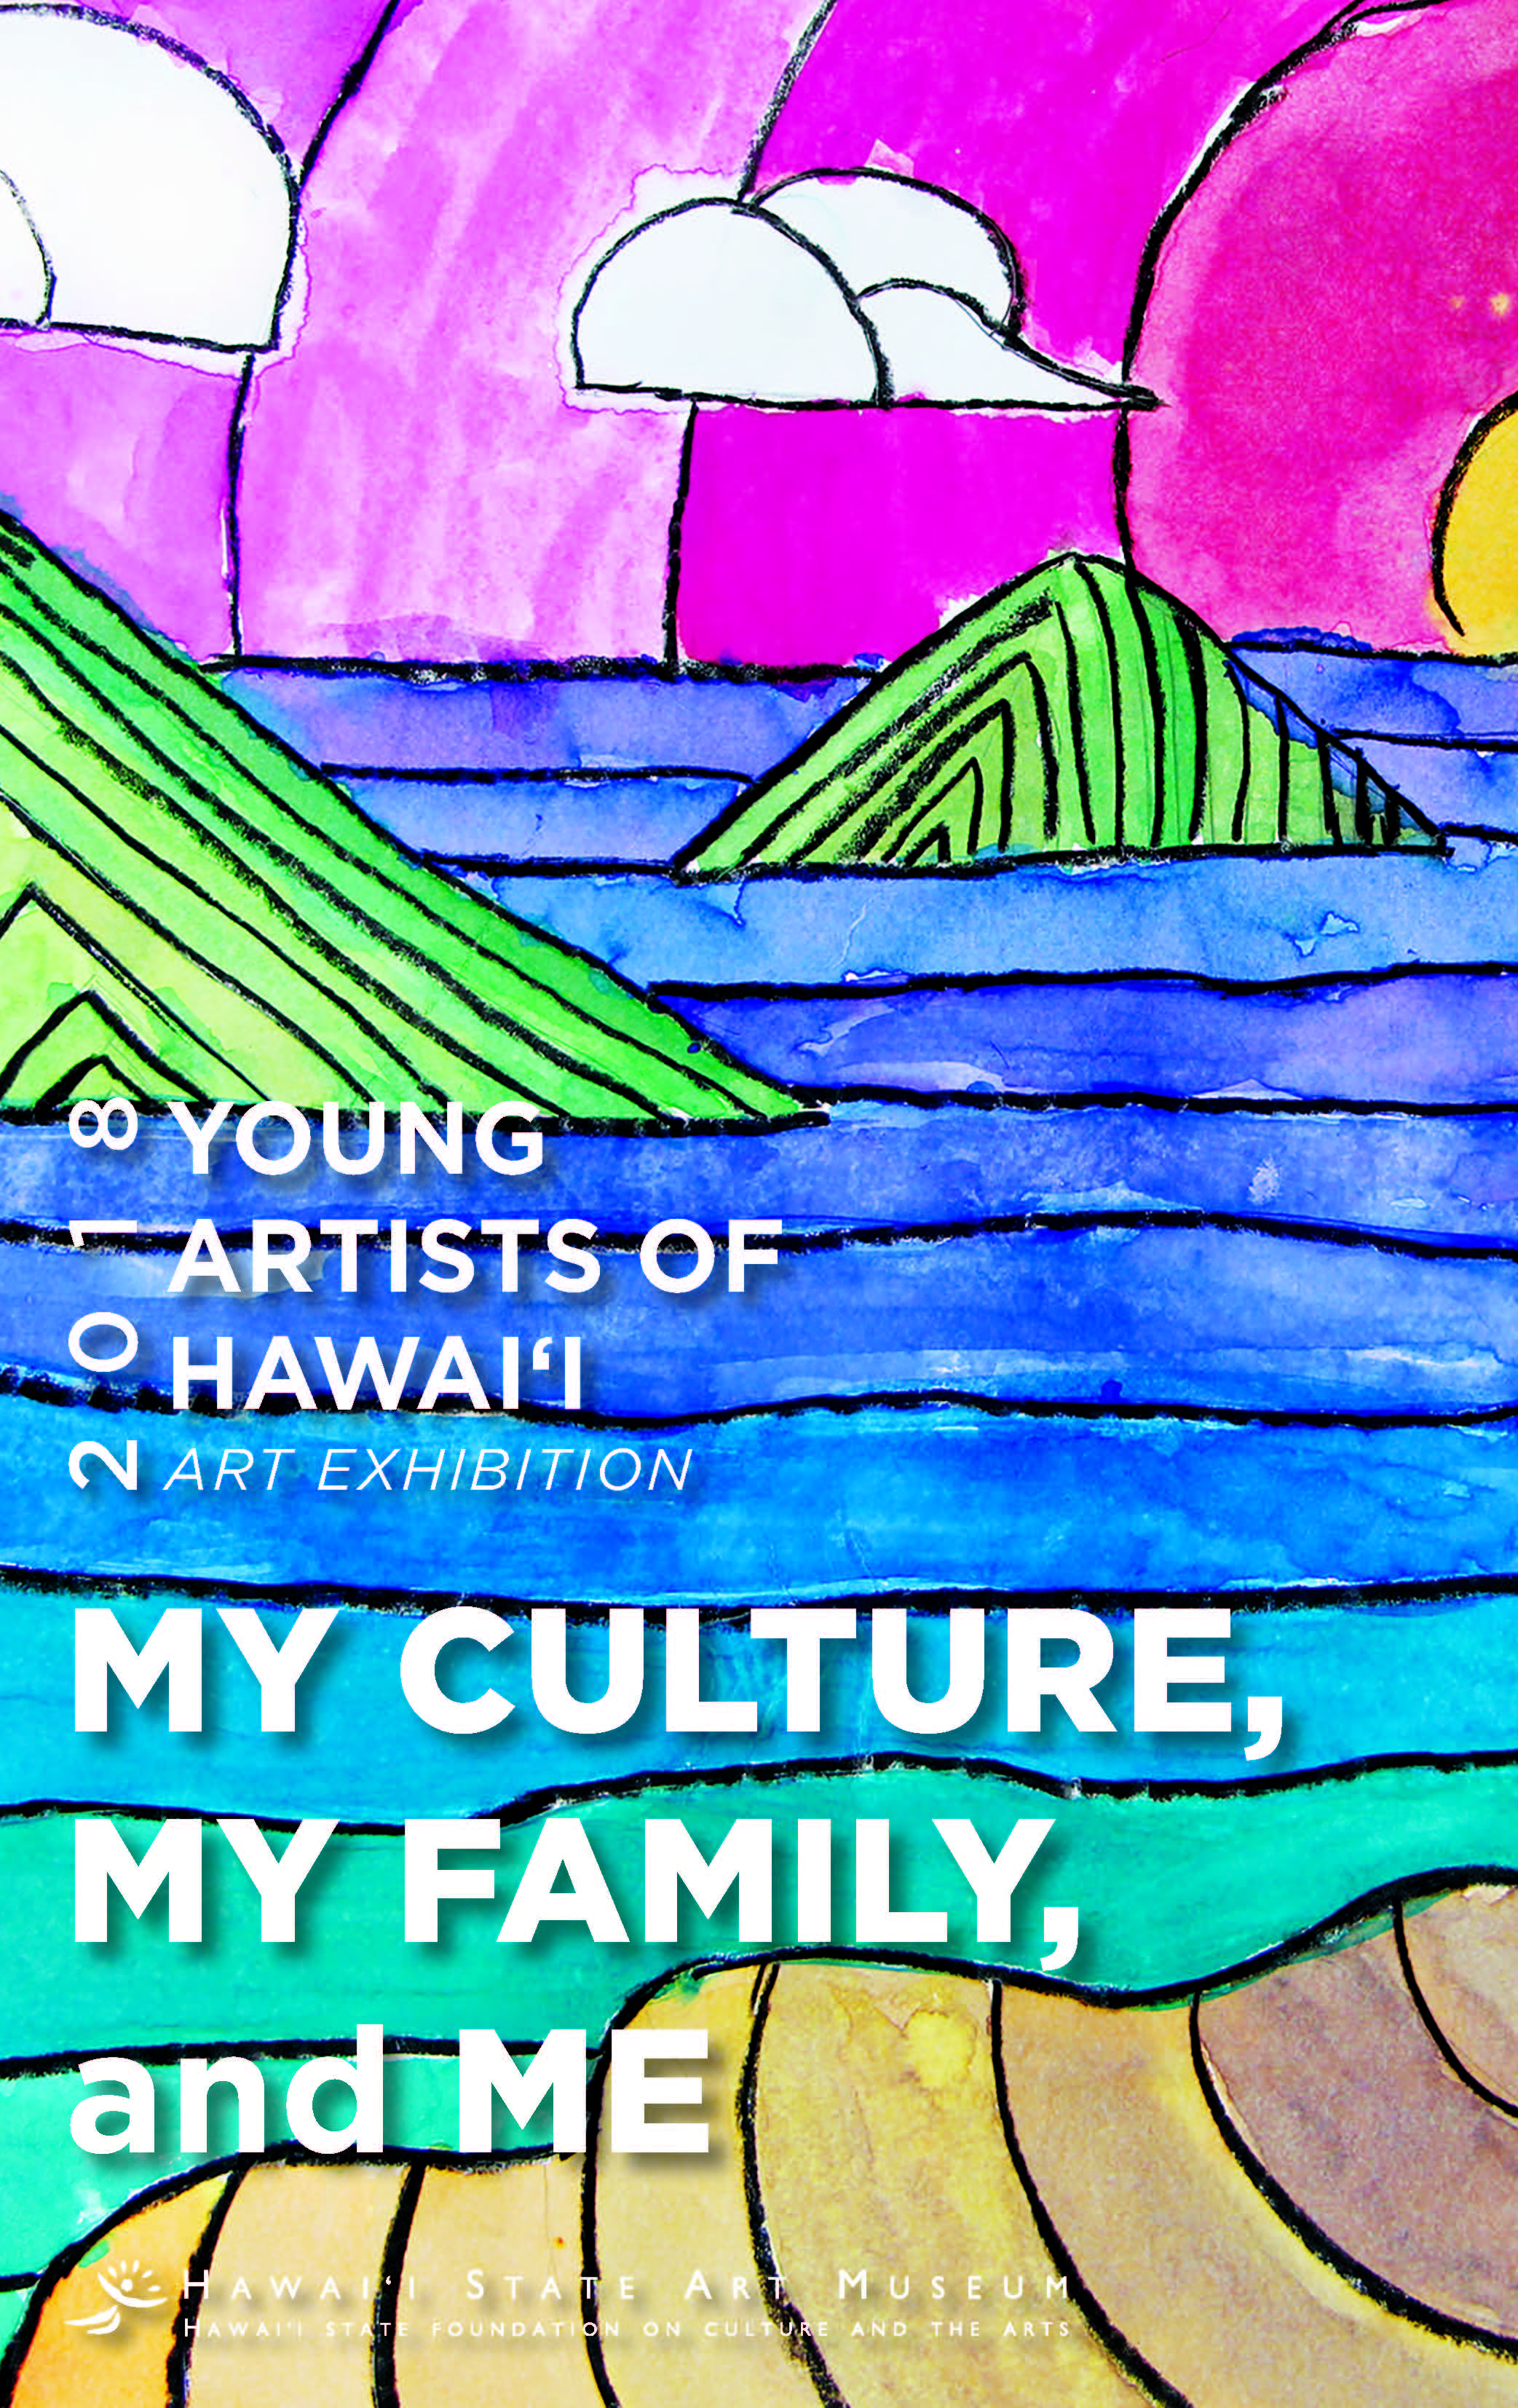 Young Artists of Hawaii 2018 promotional image